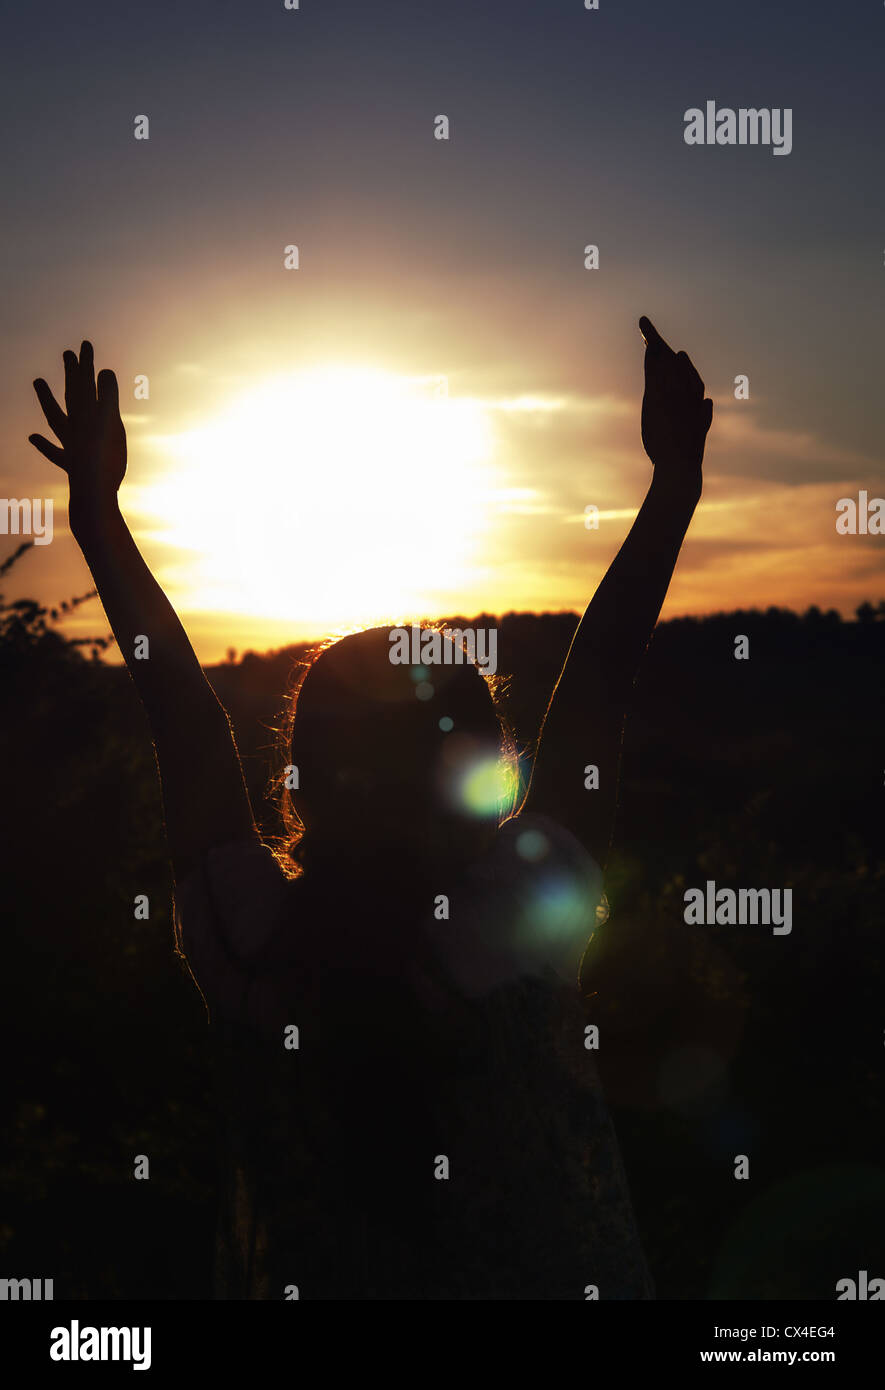 Young girl with hands up surrounding the sun at sunset - Stock Image